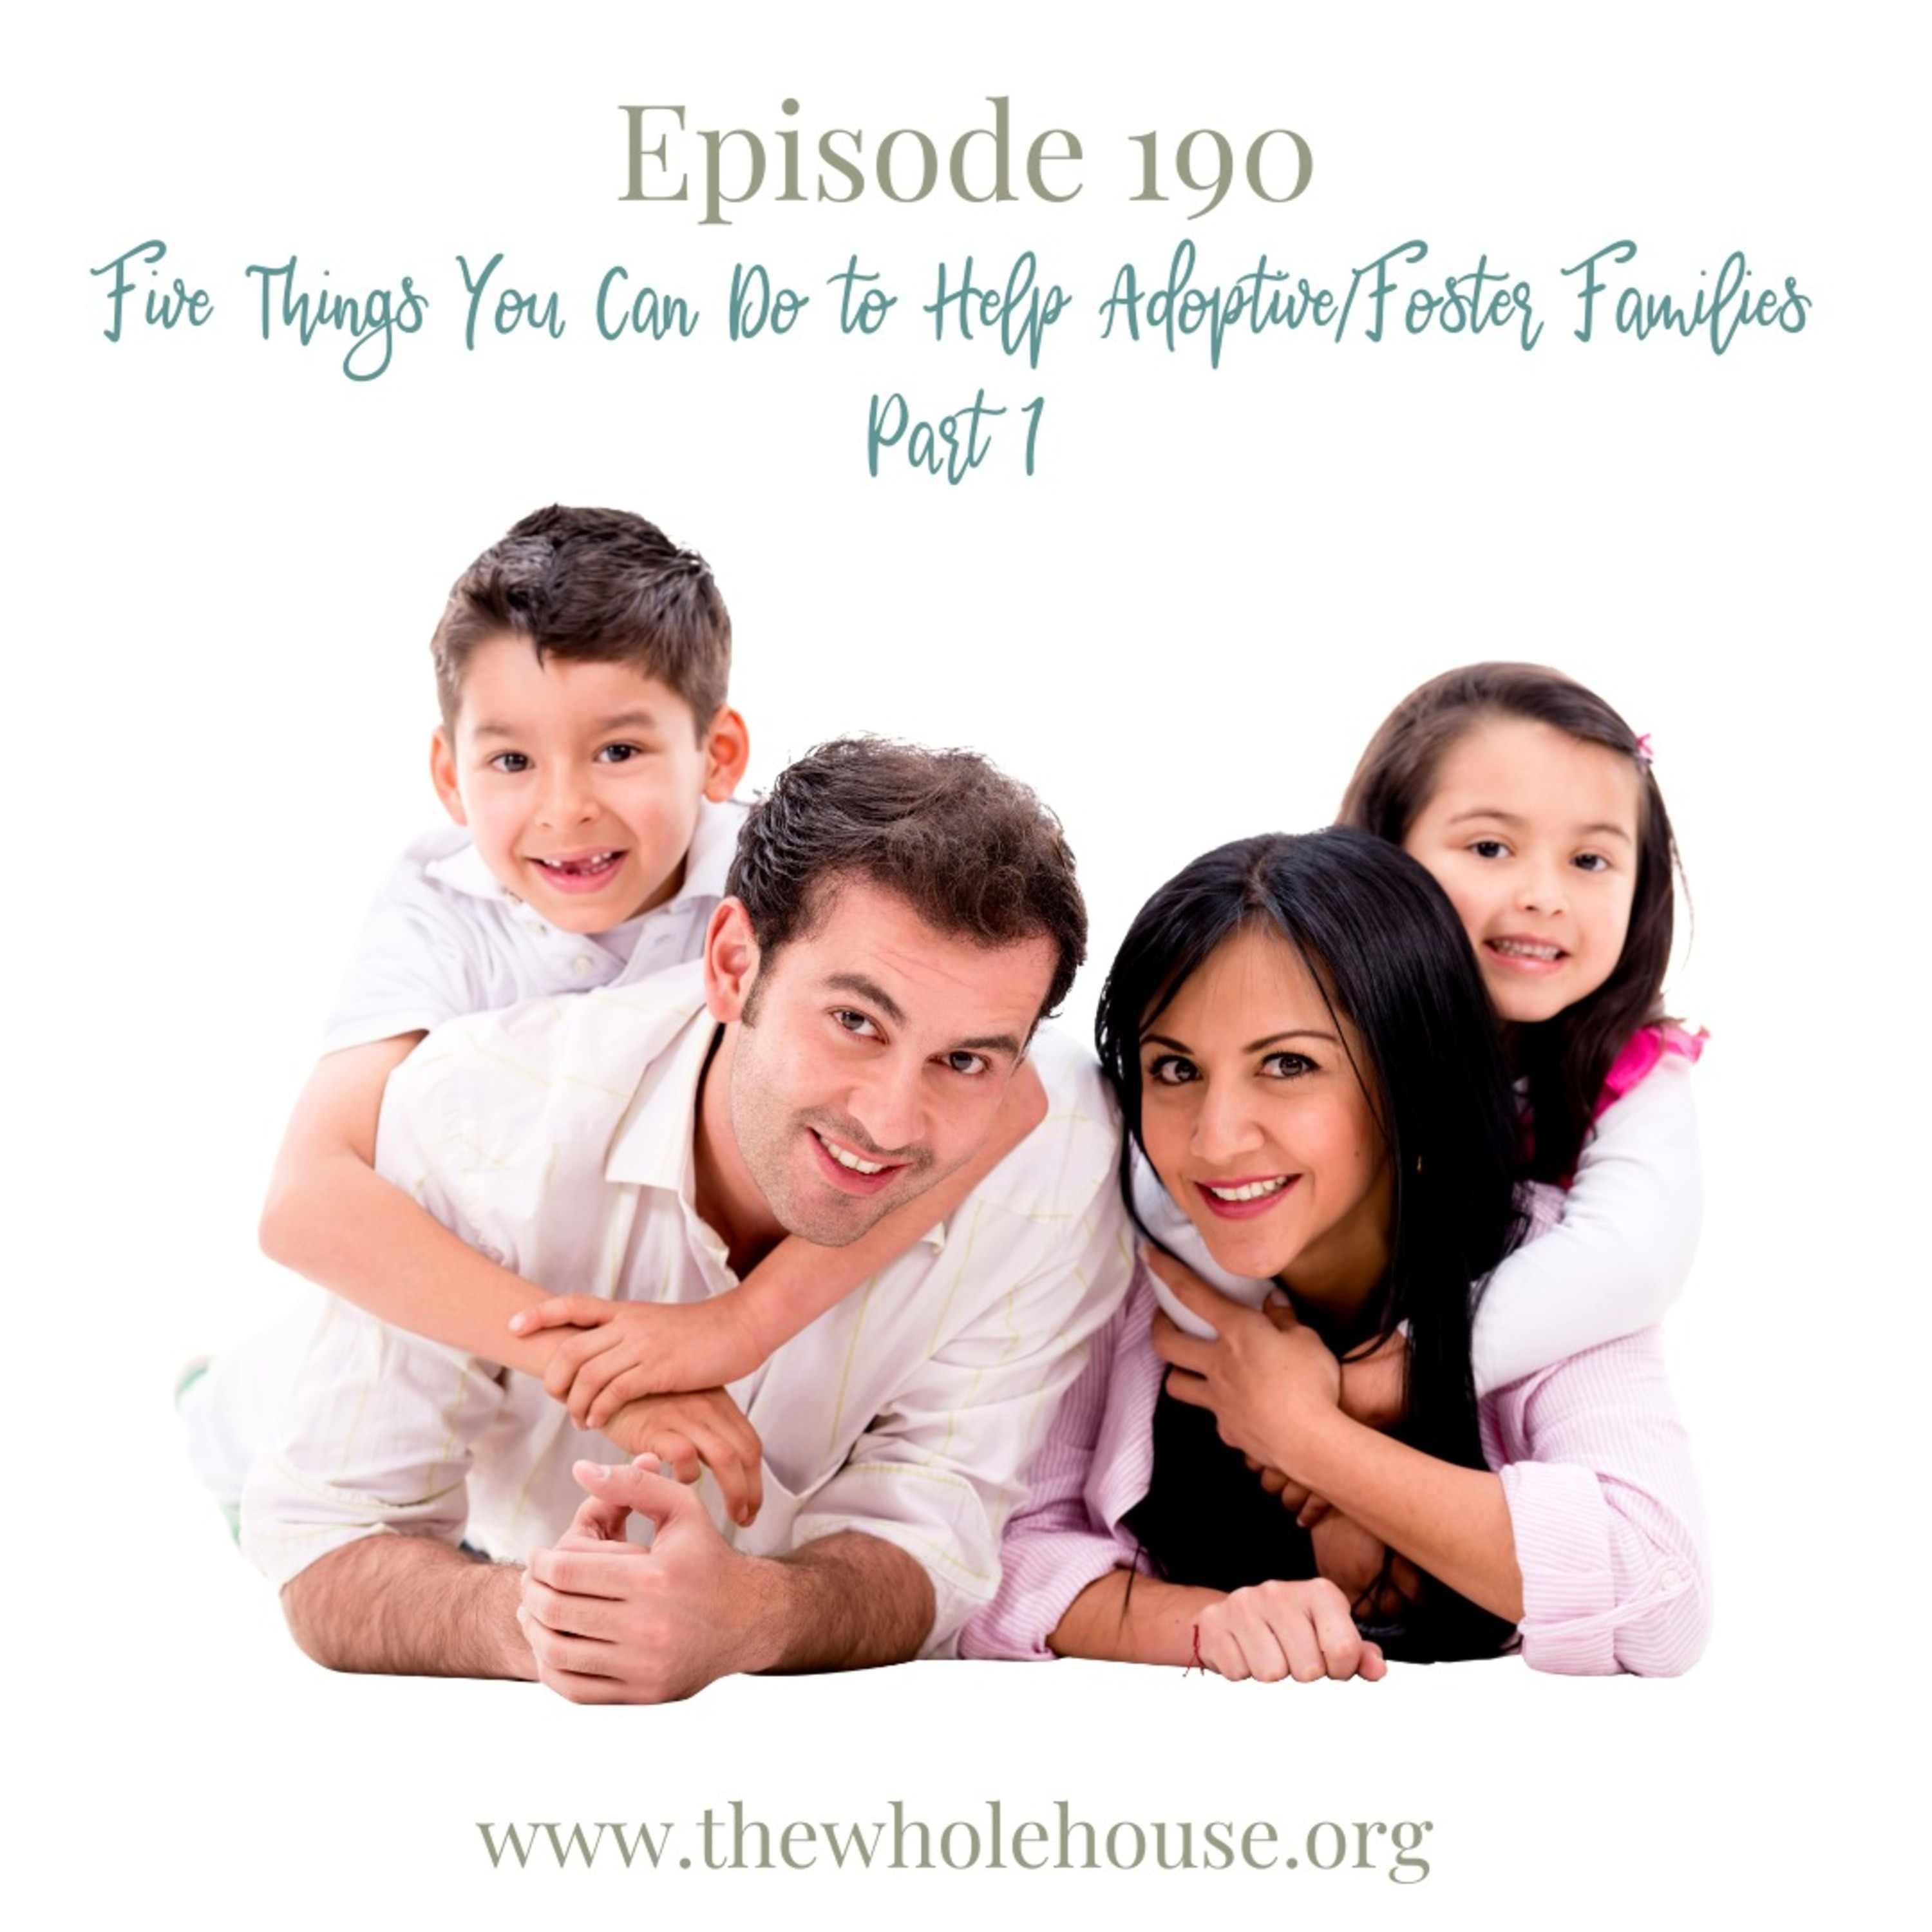 Episode 190 - Five Things You Can Do To Help Adoptive/Foster Families Part 1